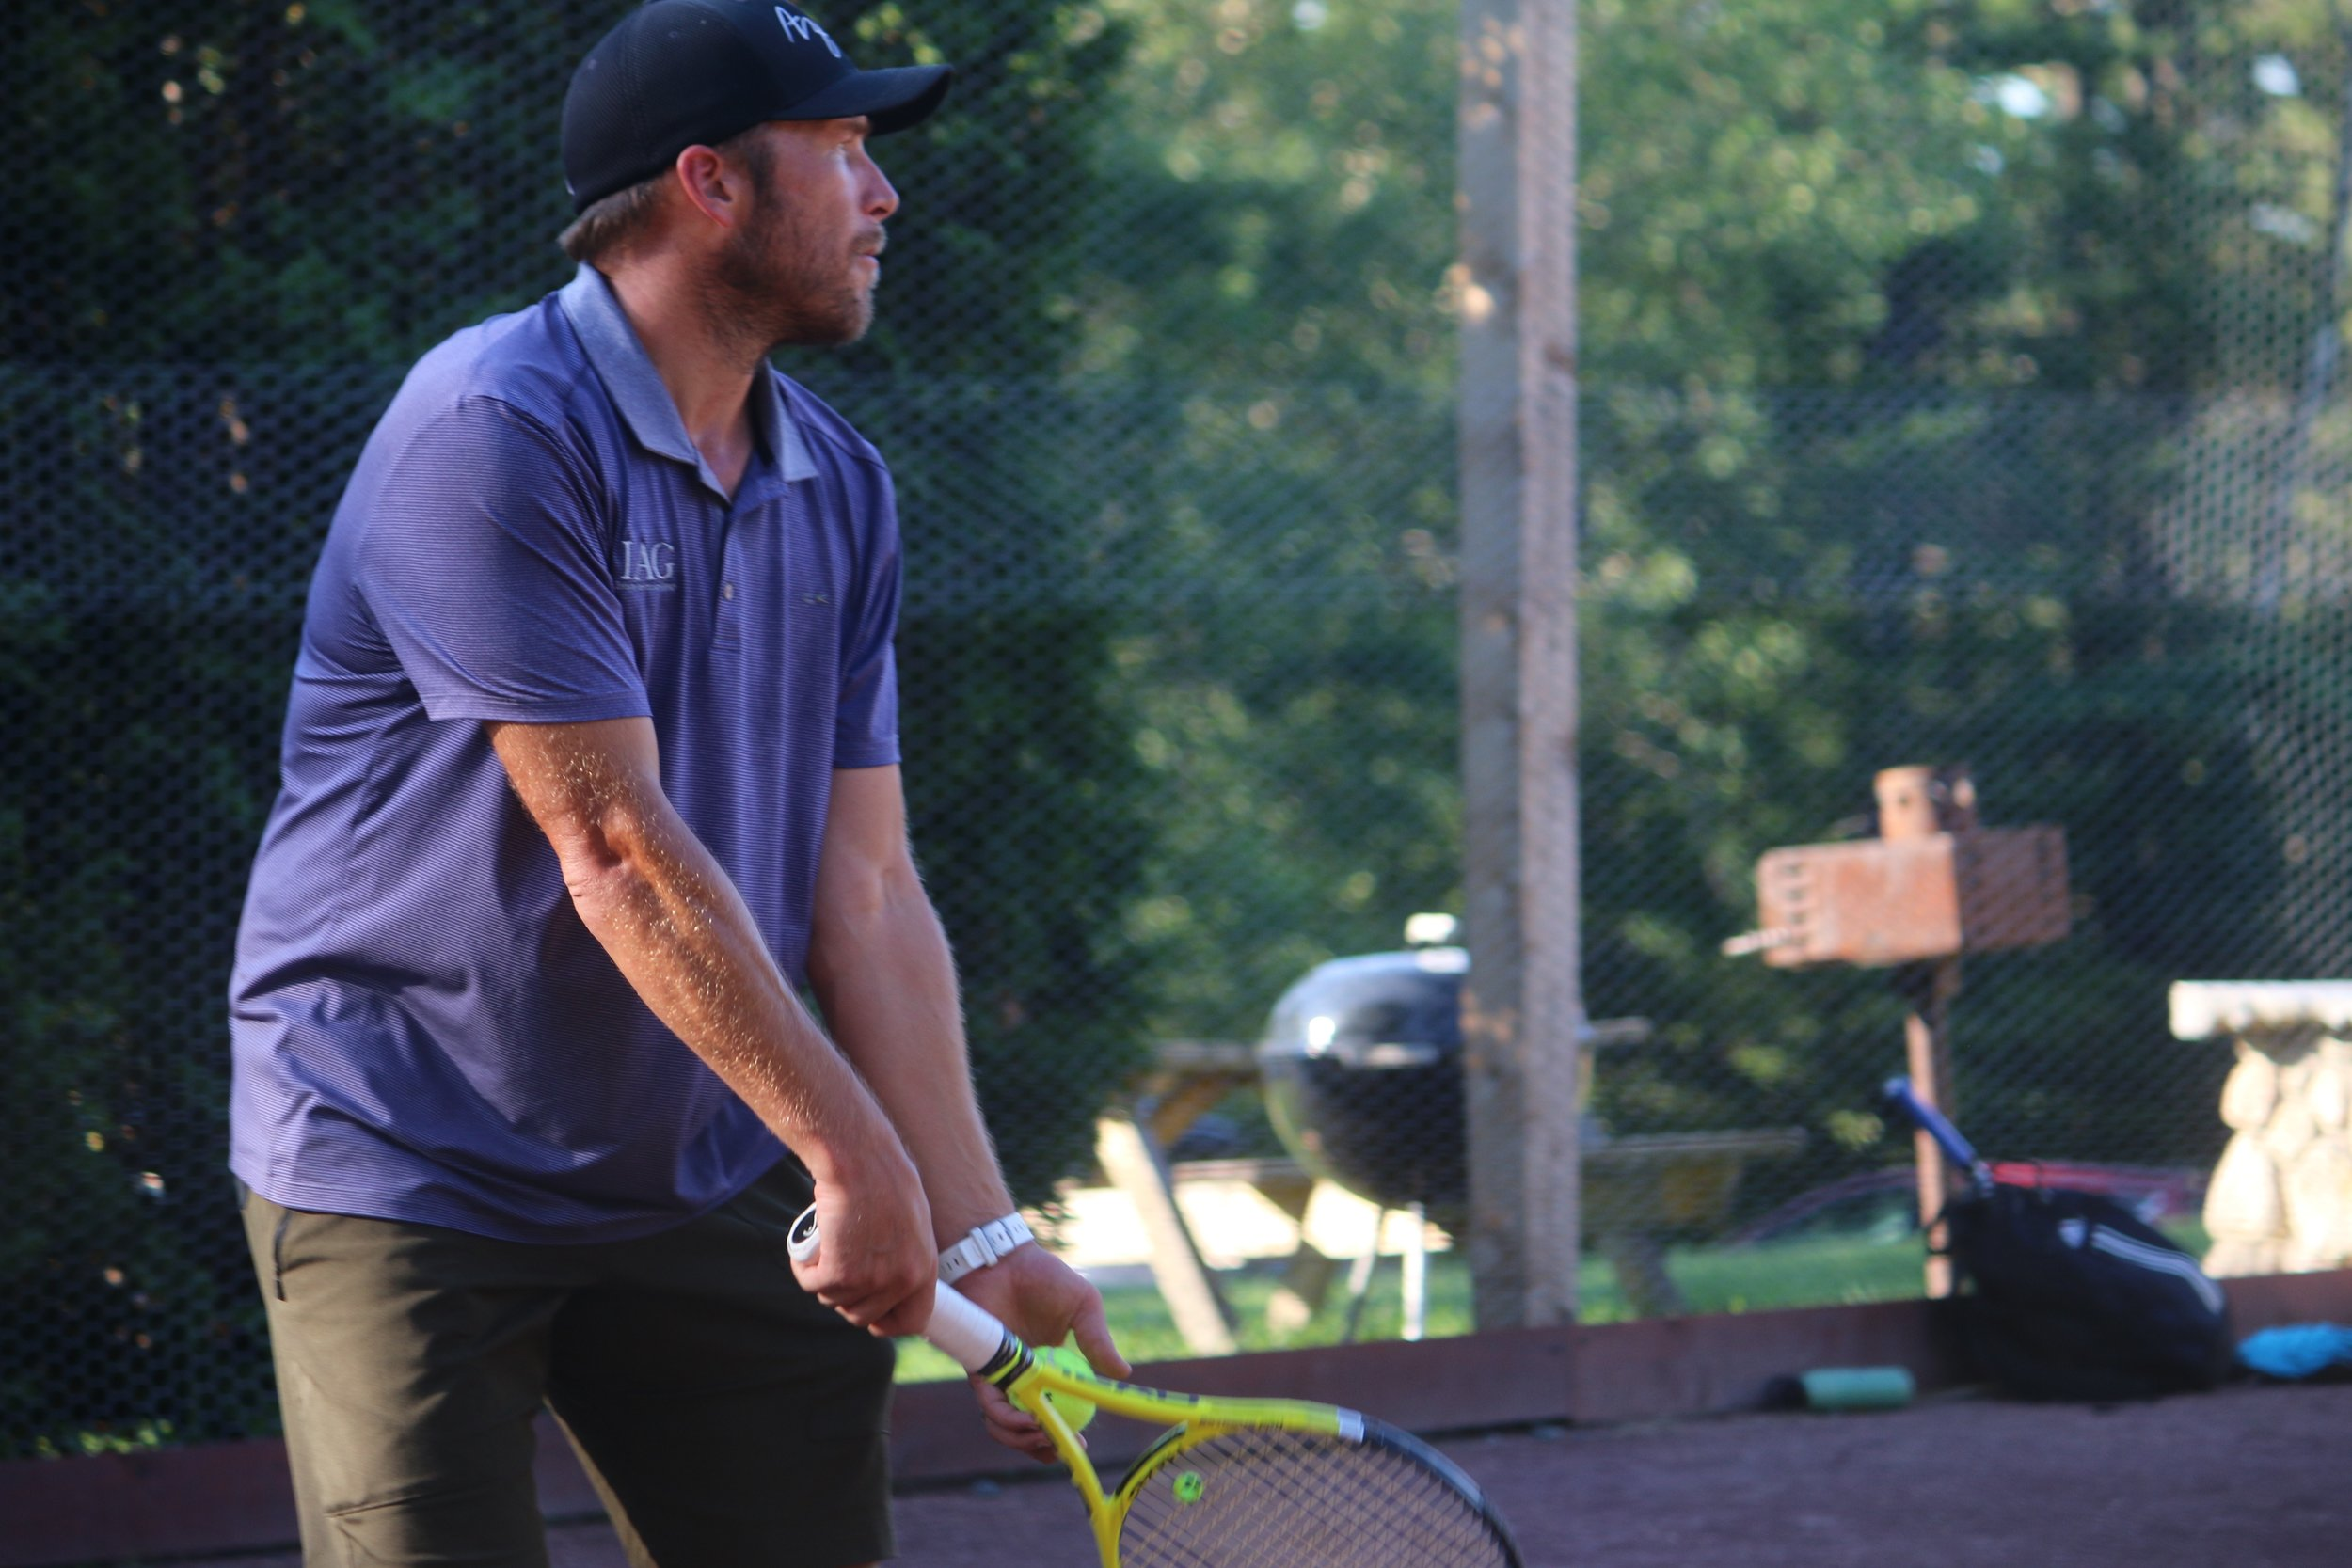 Tennis Classic Charity event - With 11 clay courts at Tamarack Tennis Camp plus amazing food by Chef Joe, this is a wonderful night with friends and family.